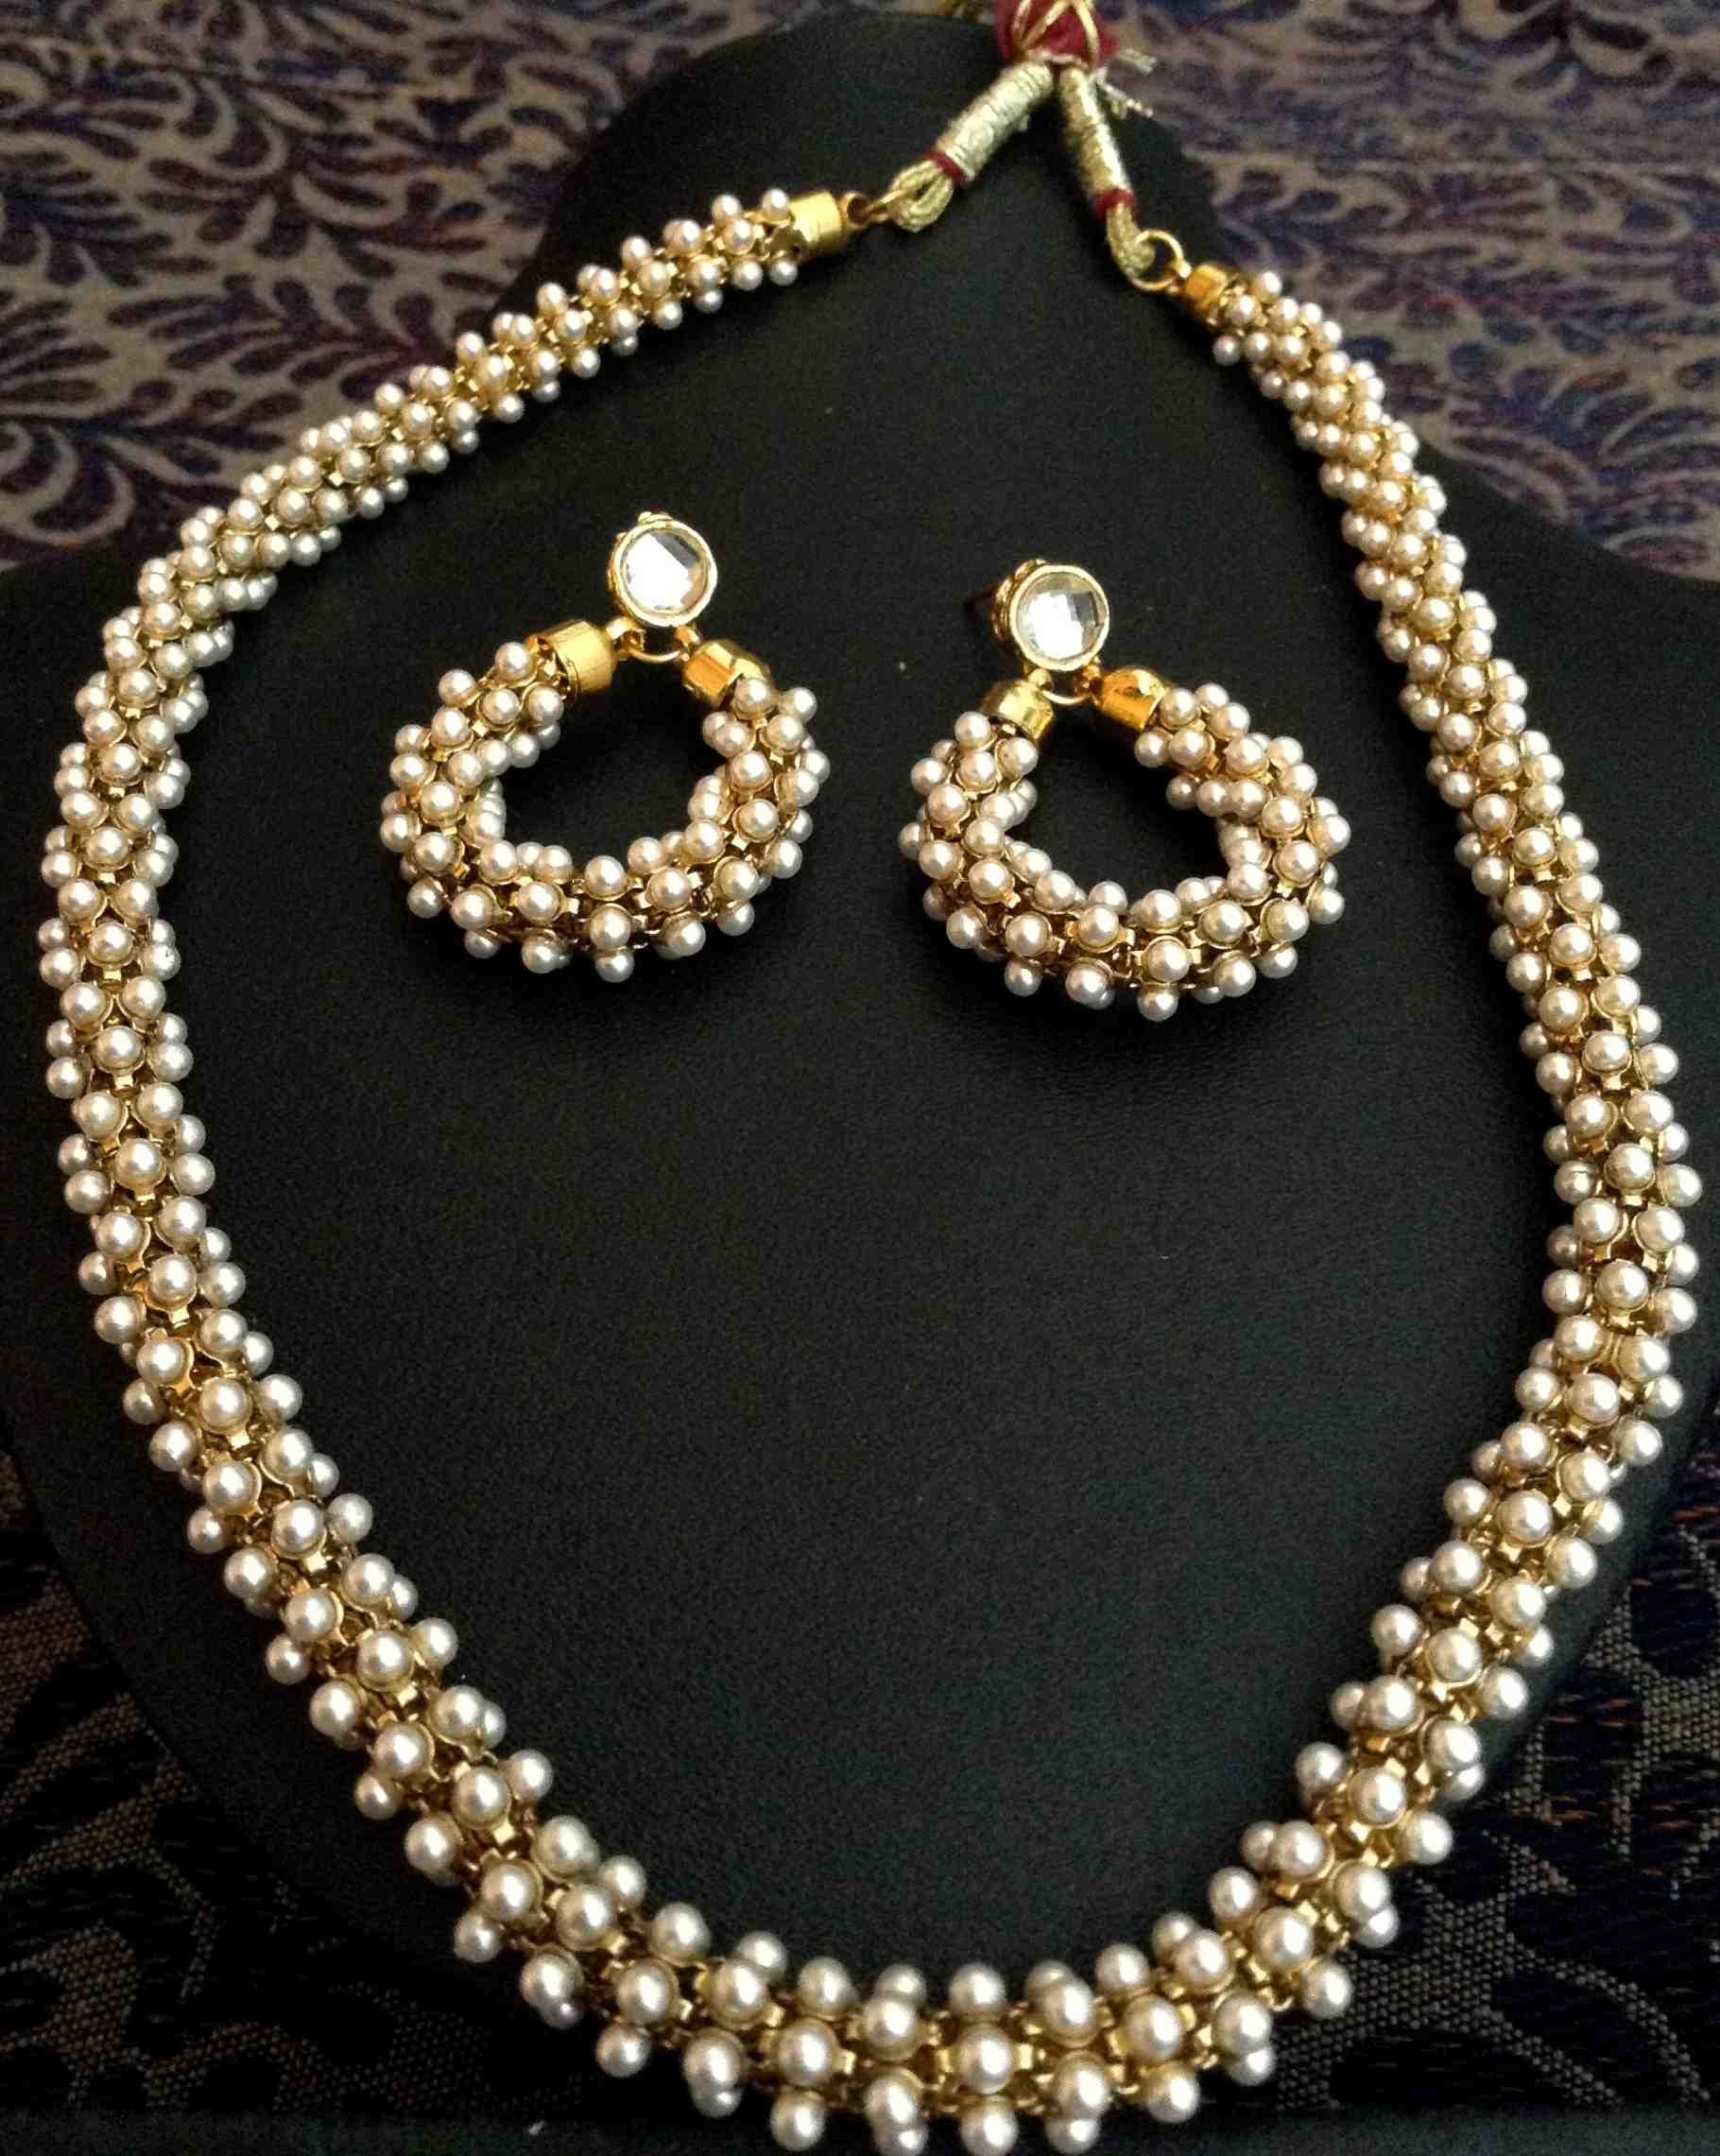 chic pearl cultured shop necklace jewelry fairine s jewellery